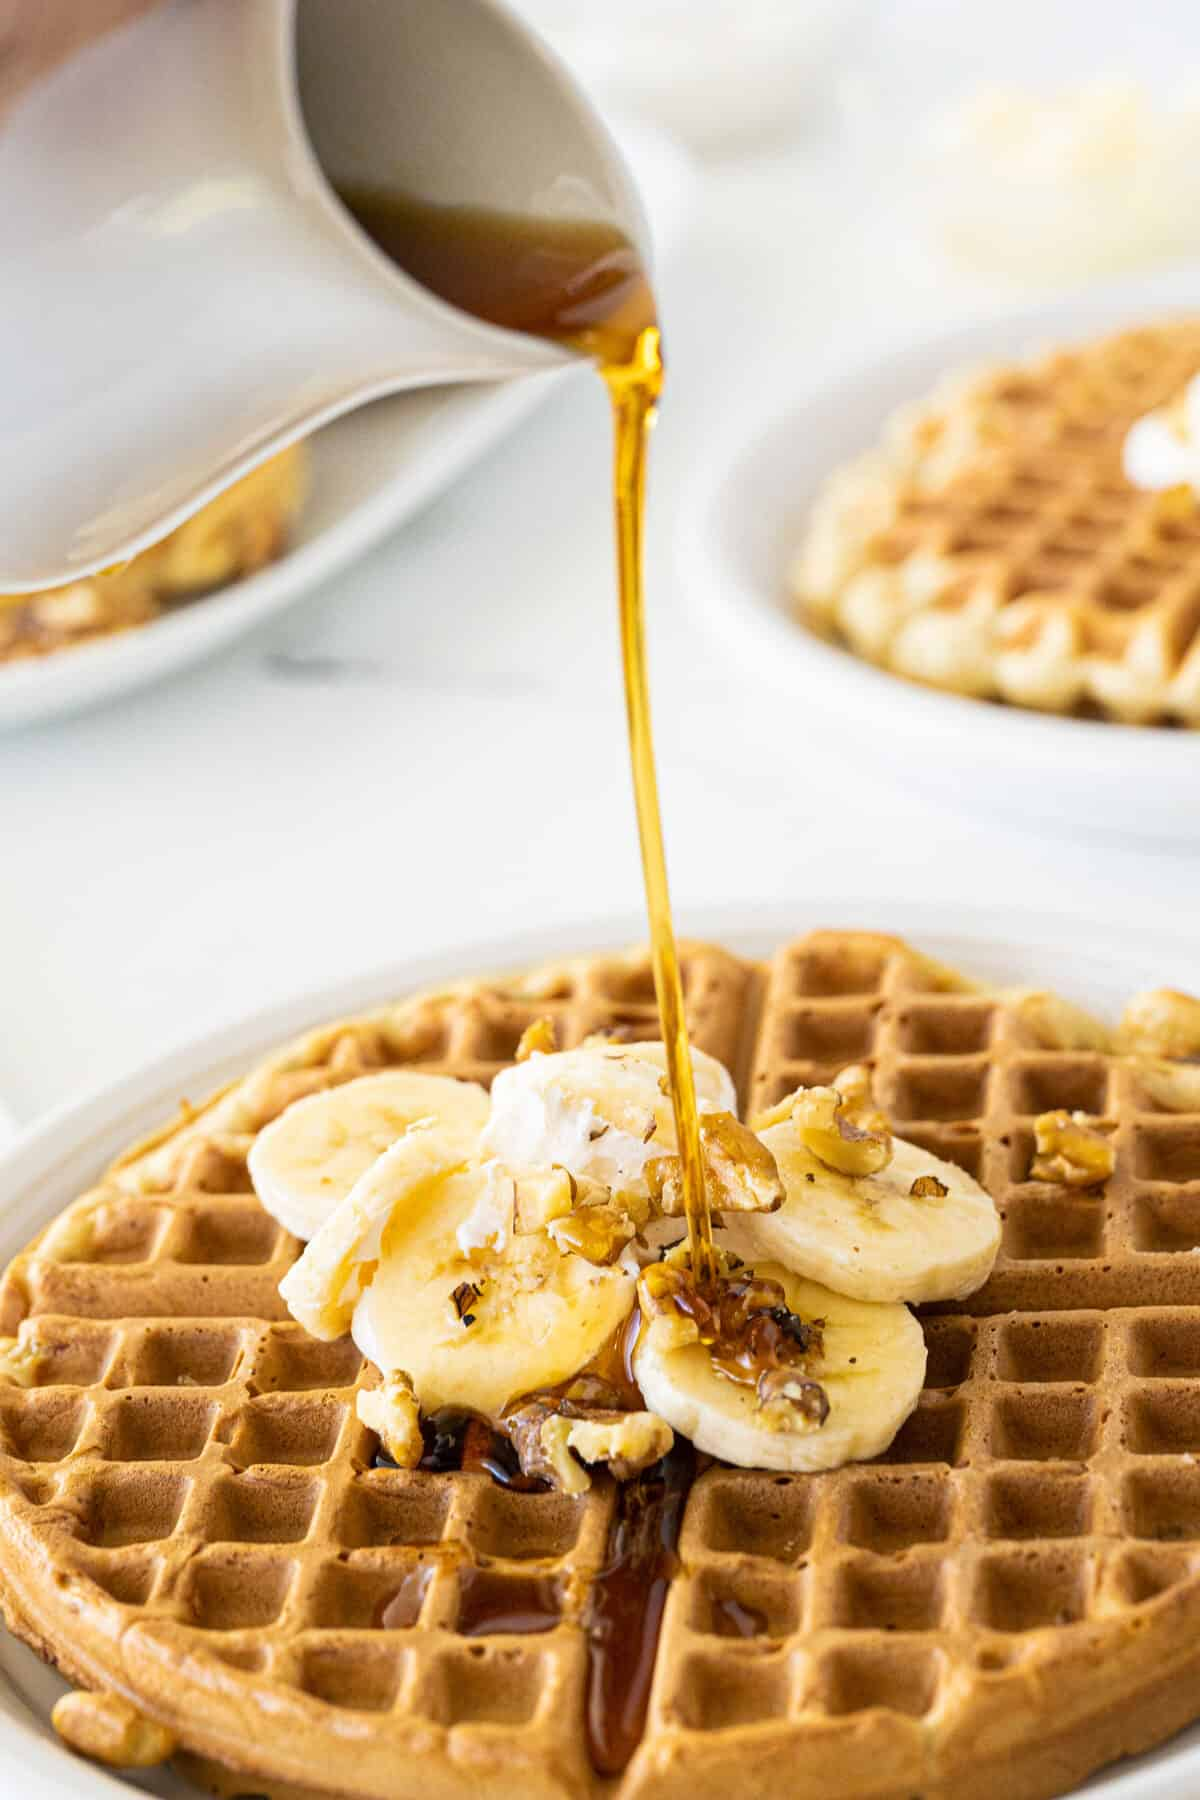 banana waffles with syrup being poured on top